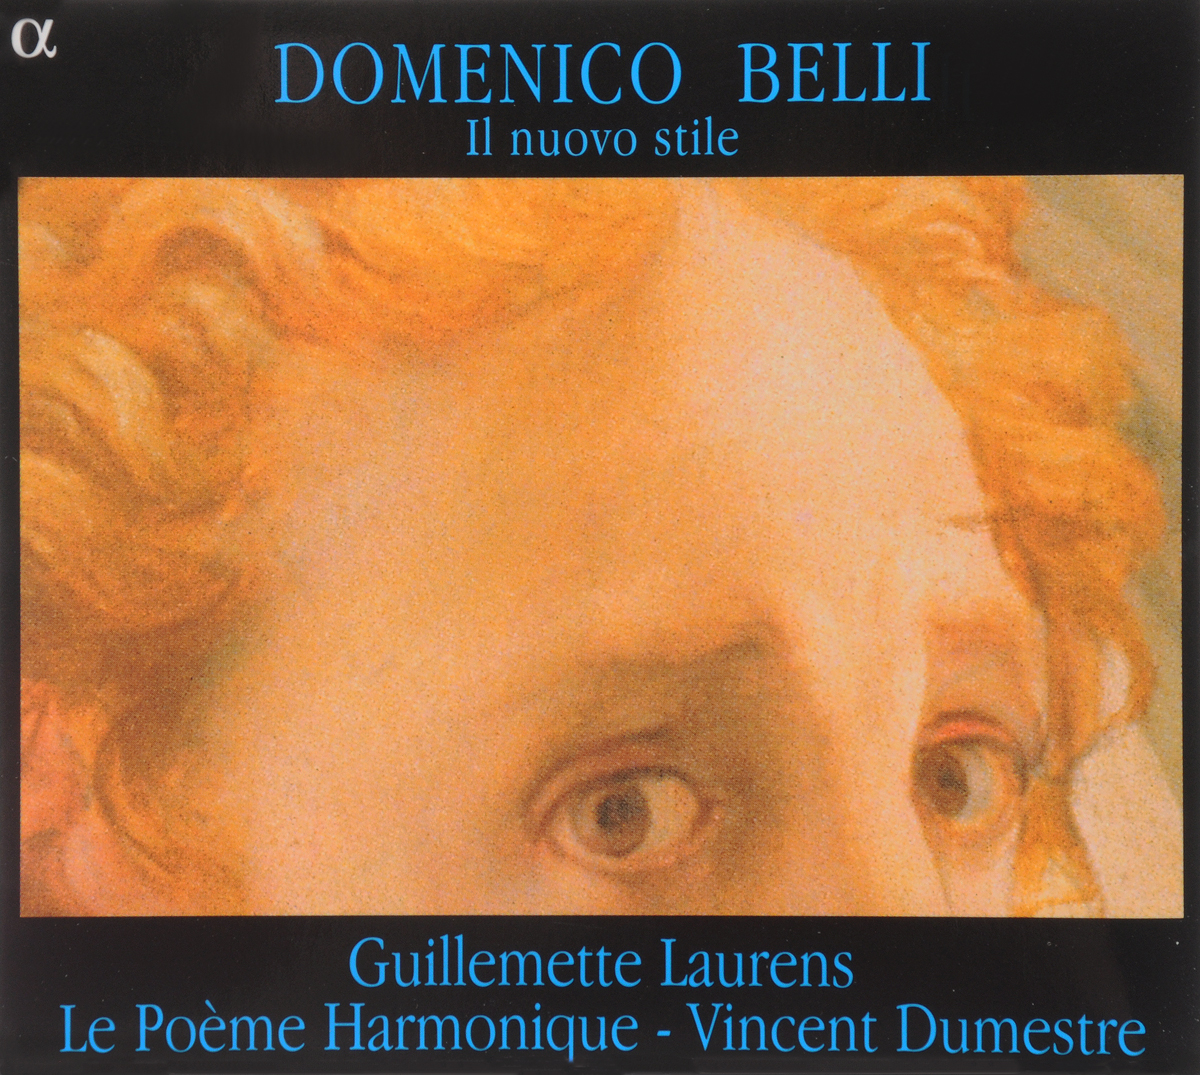 Исполнитель: VARIOUSАльбом: BELLI, DOMENICO / MADRIGAUX & ARIAS / G.LAURENS/ LE POEME HARMONIQUE/ V. DUMESTREПроизводитель: ALPHA